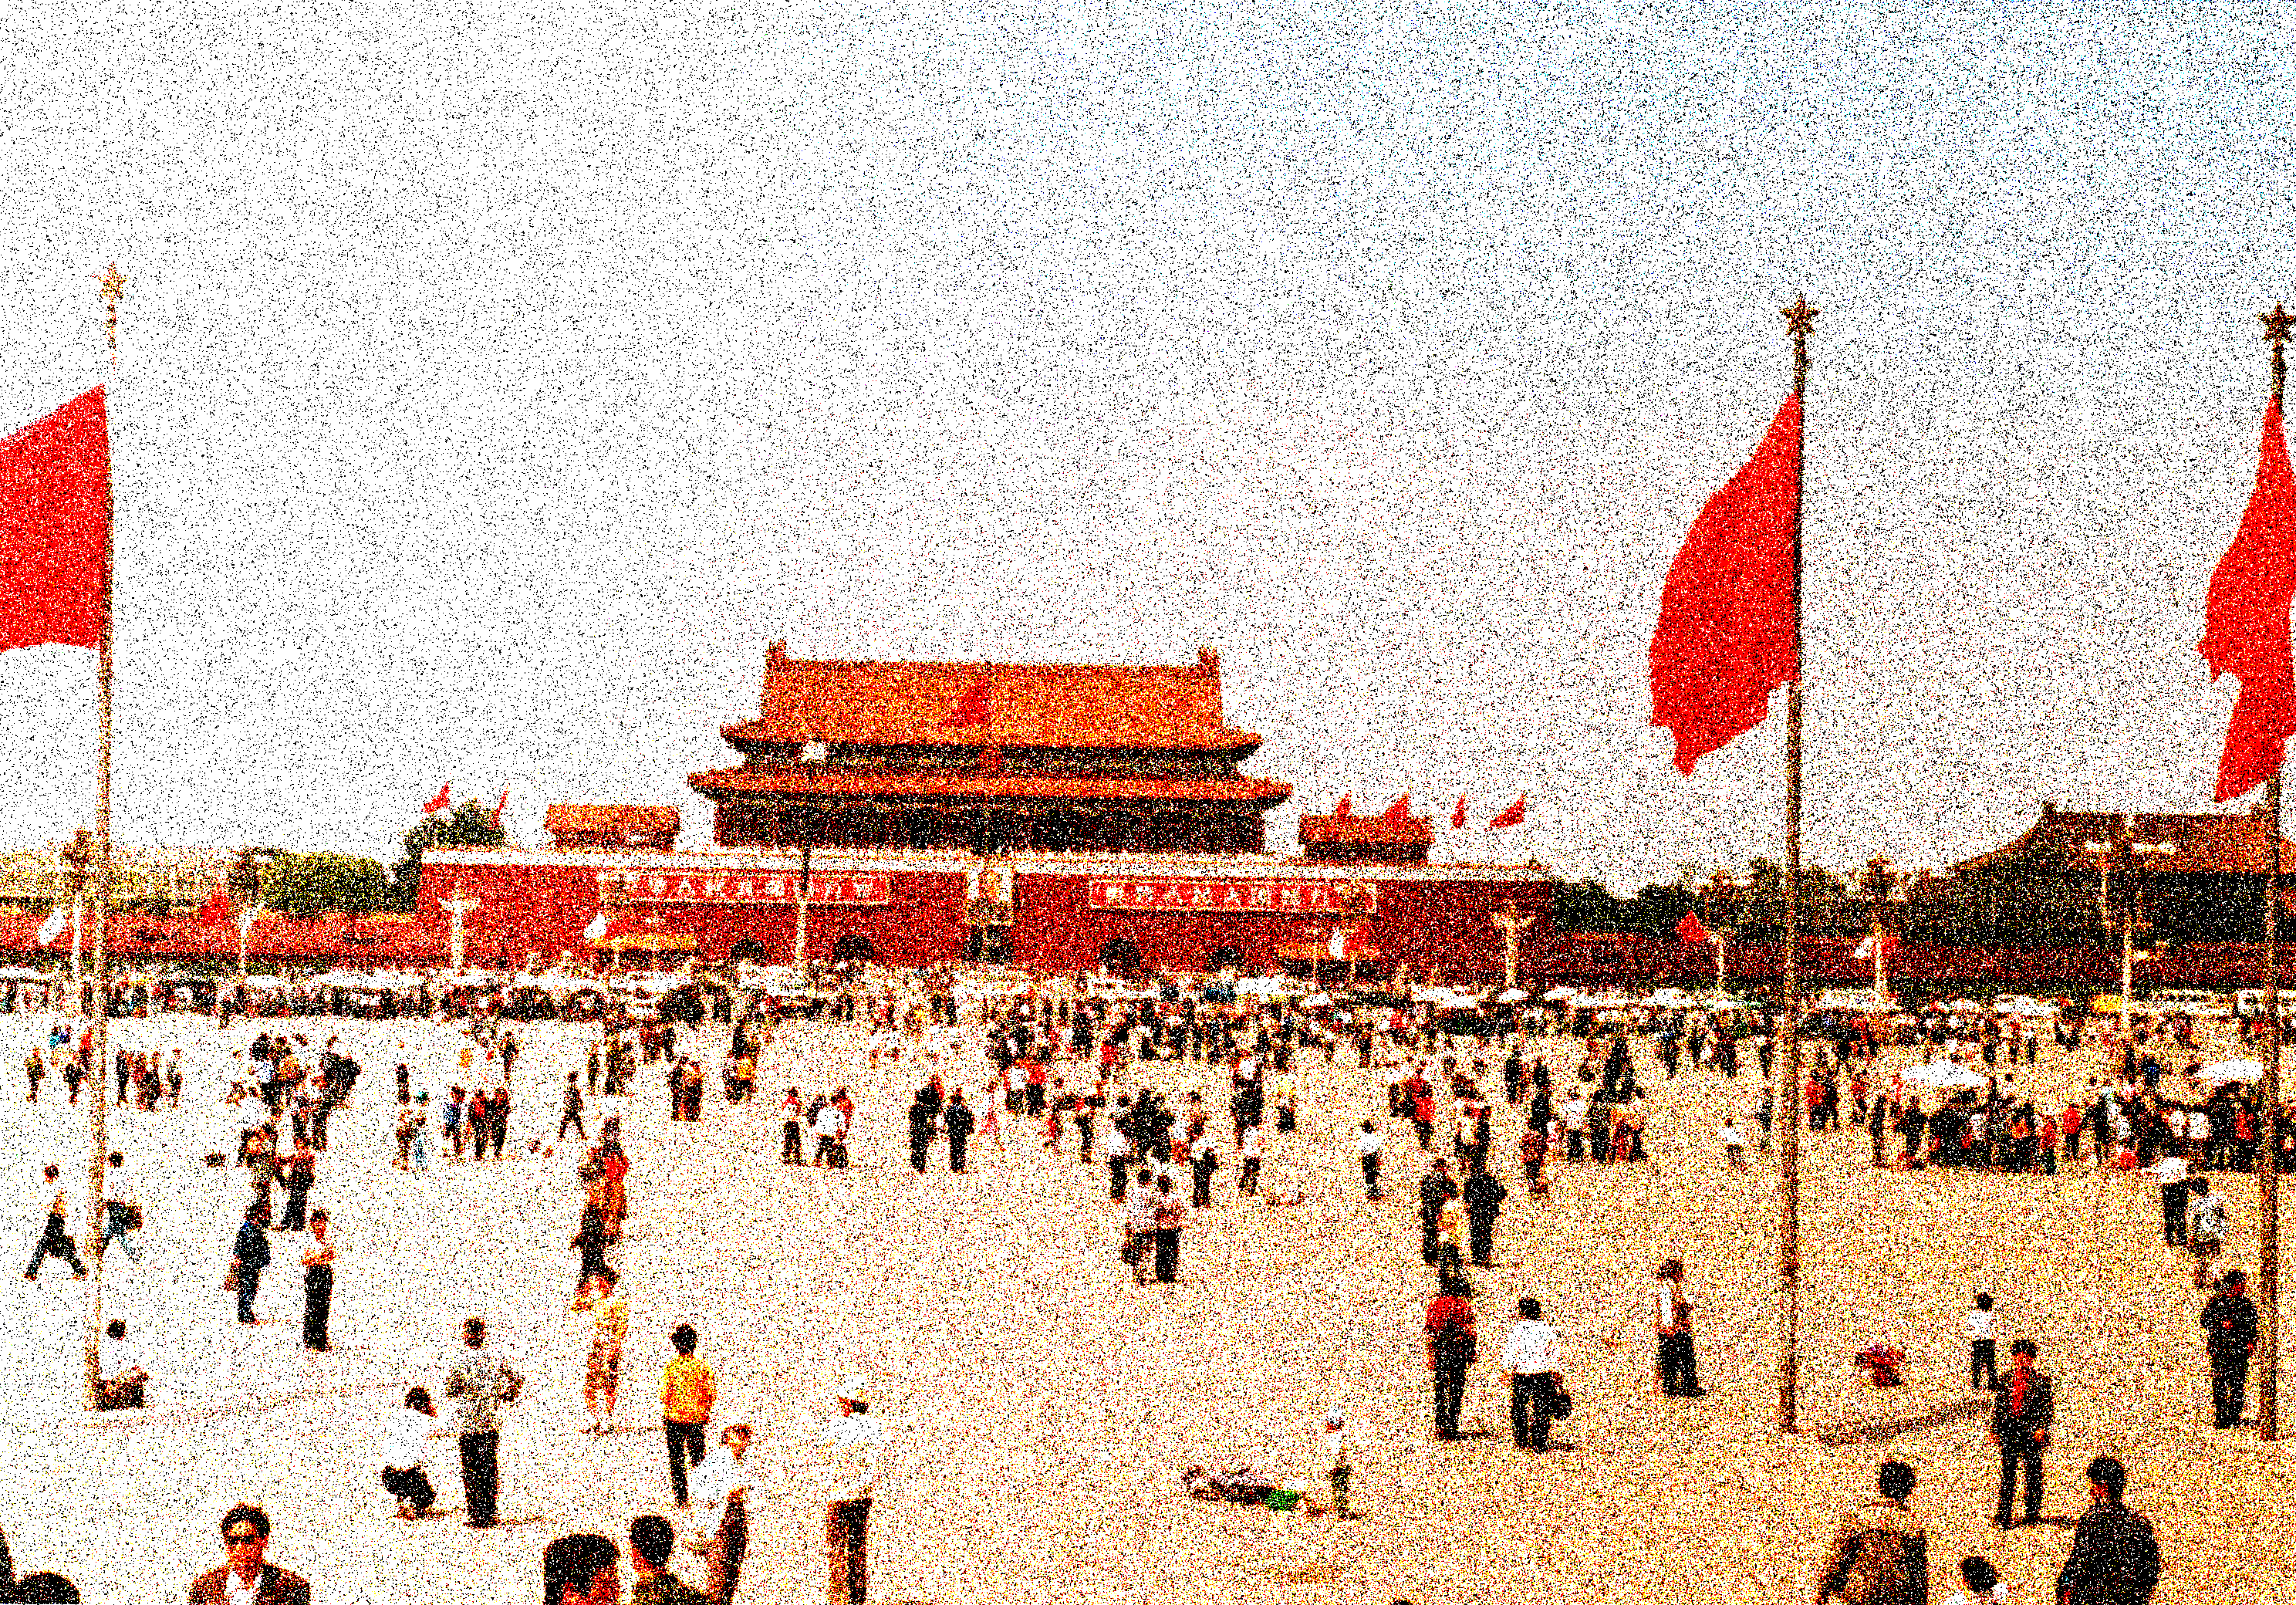 Tiananmen_Square__Beijing__China_1988_(1).png